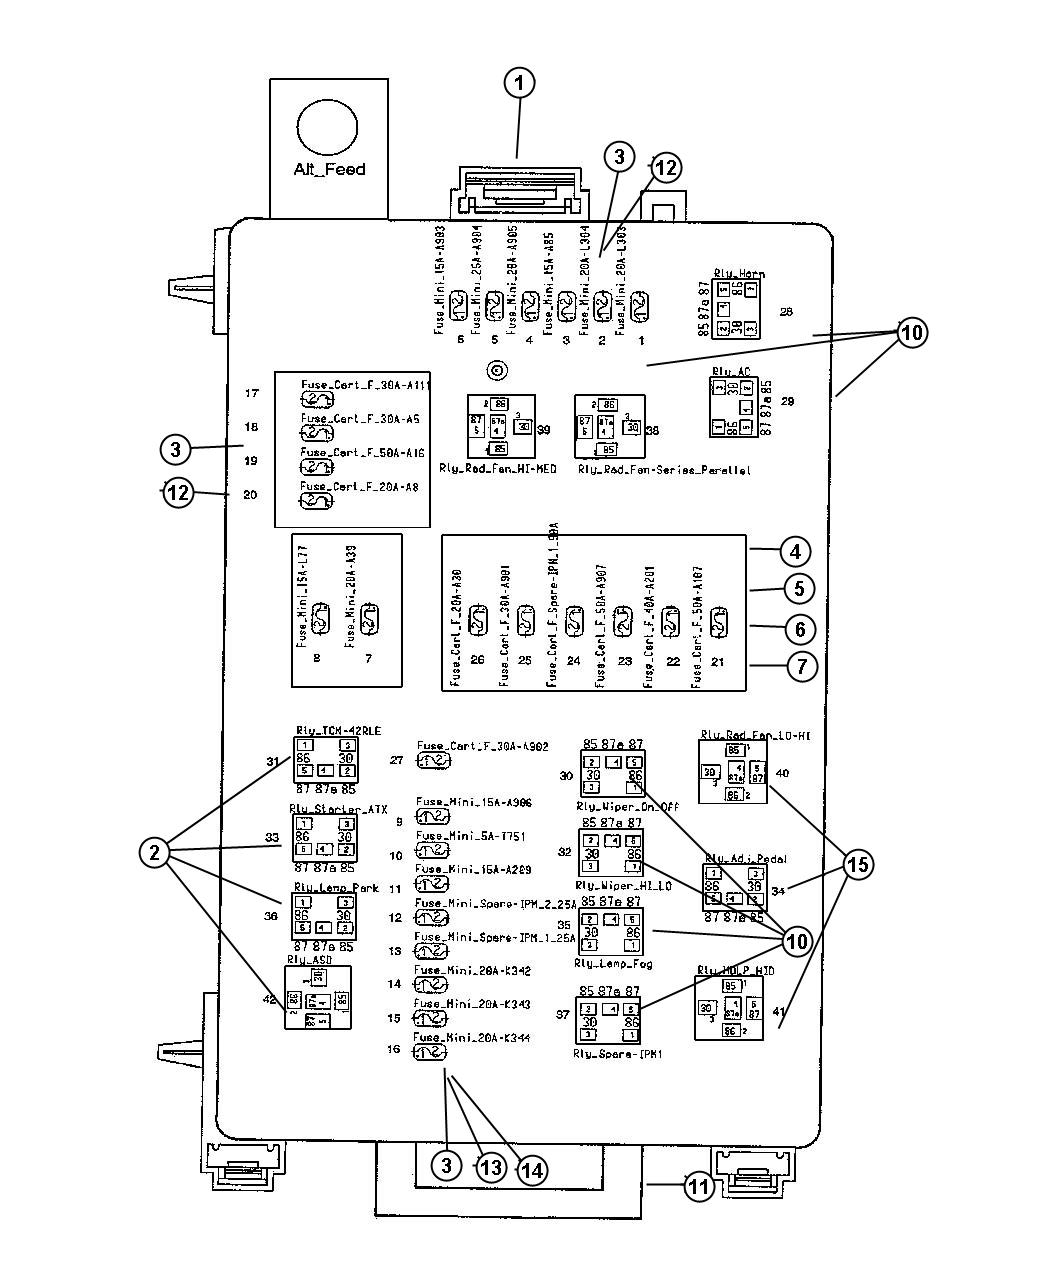 radiator fan relay wiring diagram for 2005 caravan patient management system chrysler 300 fuse location get free image